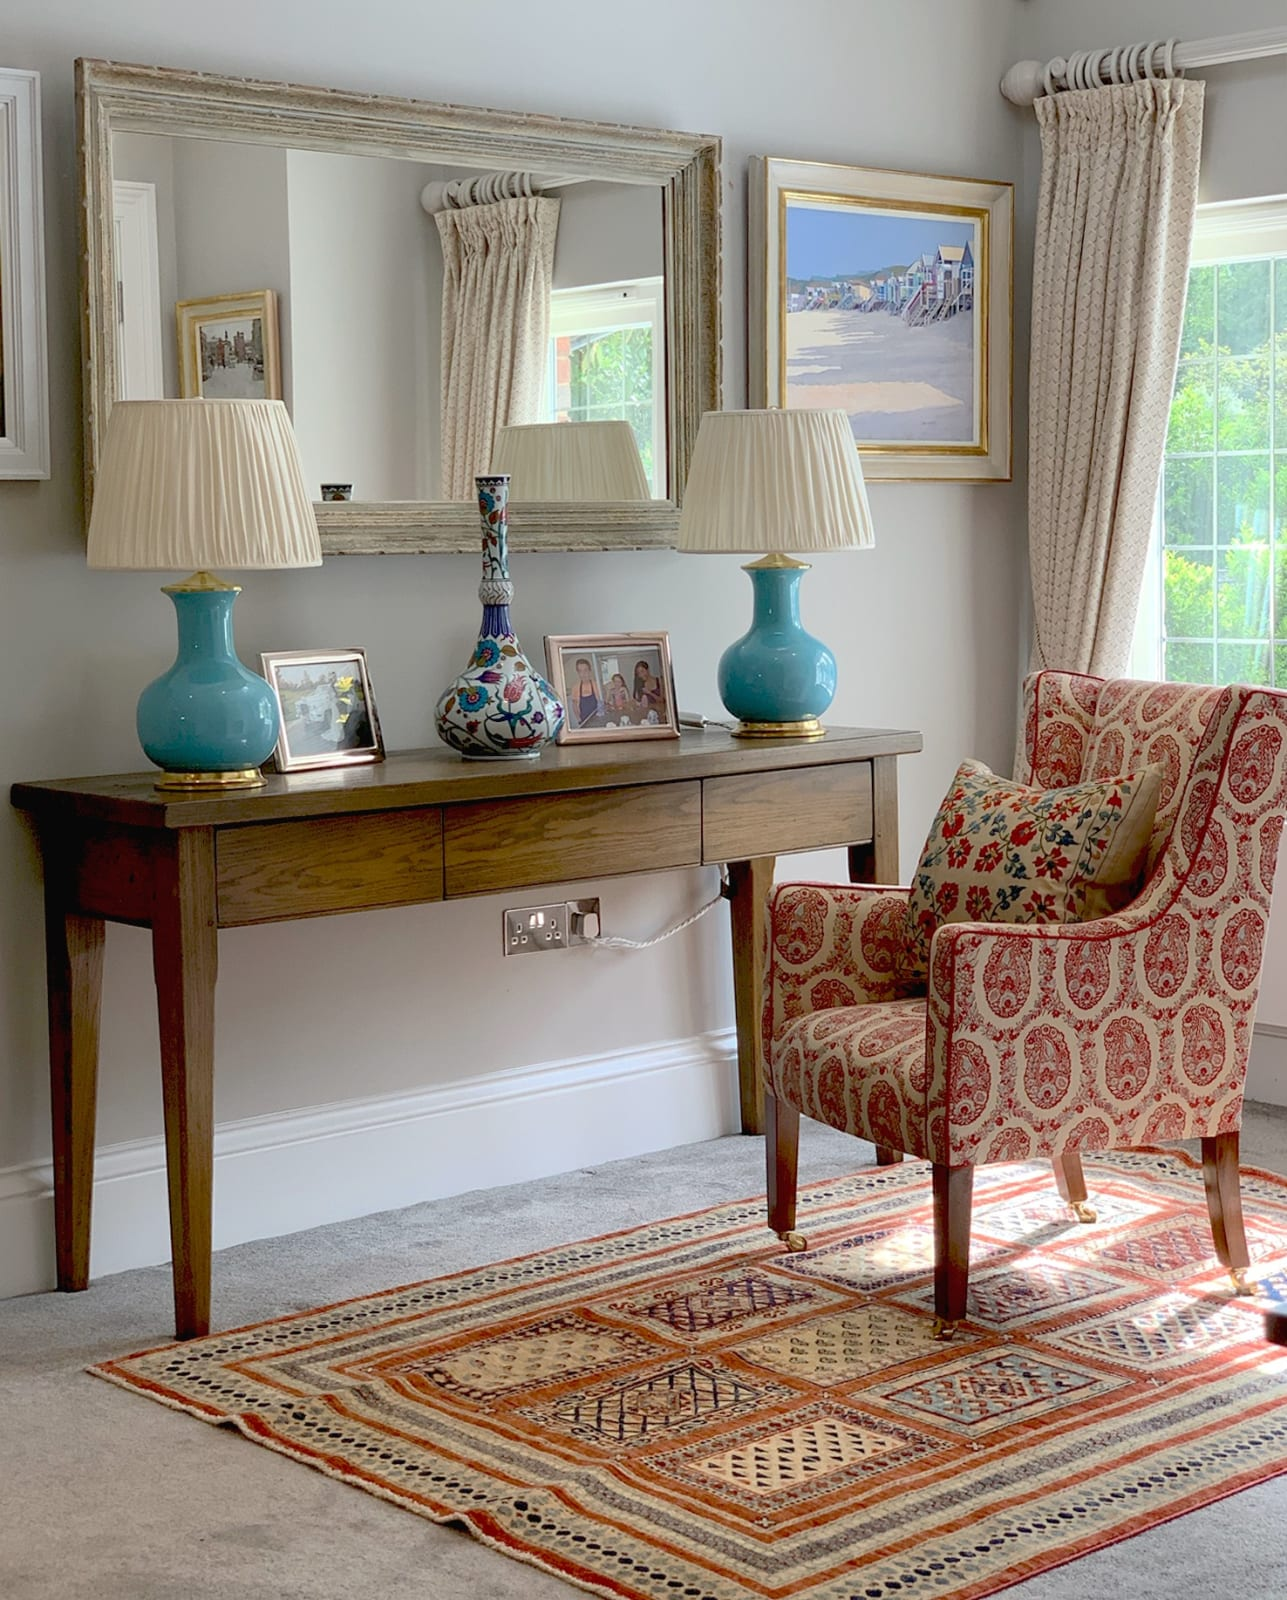 An original painting by John Spakes ROI in this interior with Susan Deliss fabrics and stunning Christopher Spitzmiller lamps.